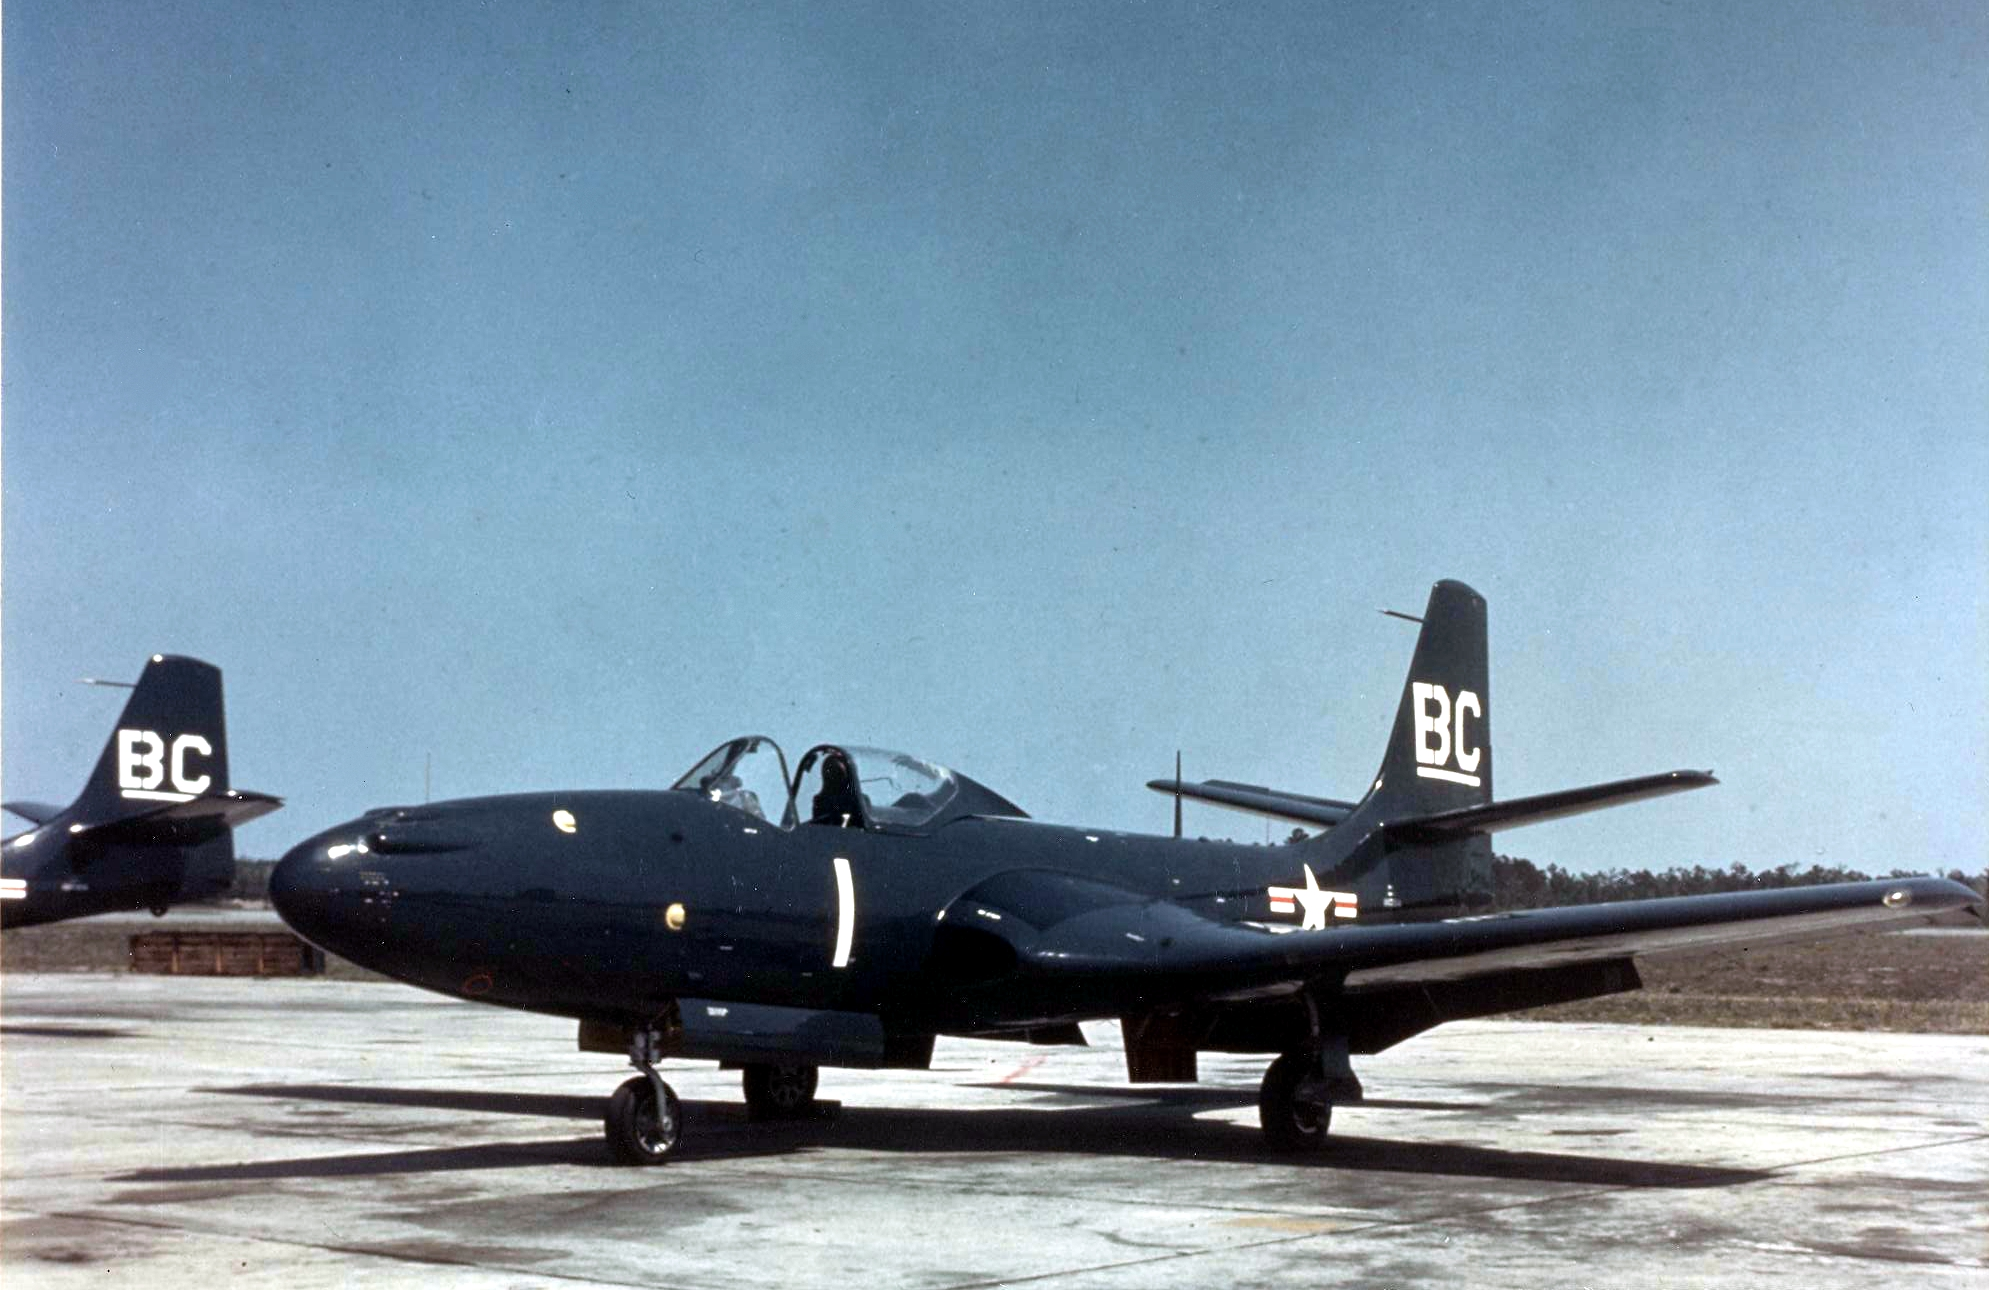 FH-1_Phantoms_of_VMF-122_parked_c1949